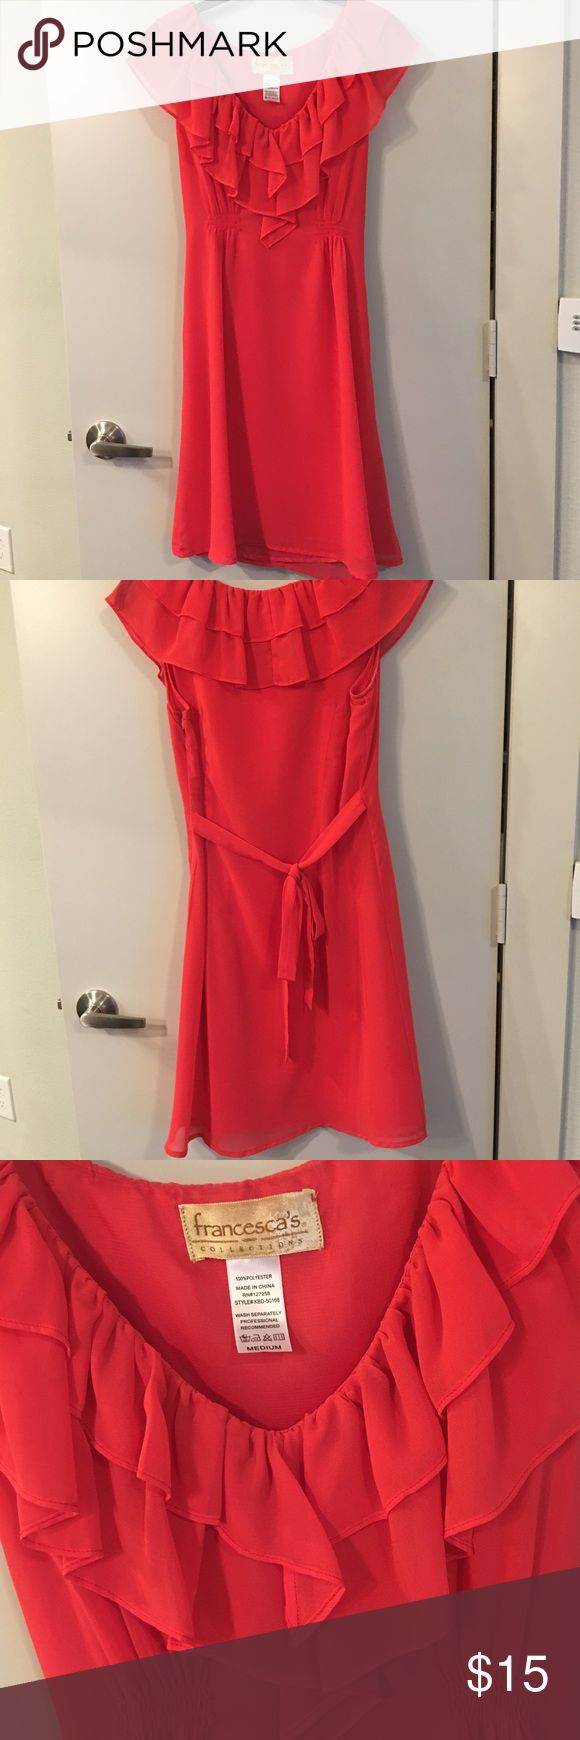 Red Dress with Ruffled Detail Beautiful red dress with ruffled Detail at the top! This is a great dress to dress up for work or down for the weekend! Zips on the side. Francesca's Collections Dresses Midi